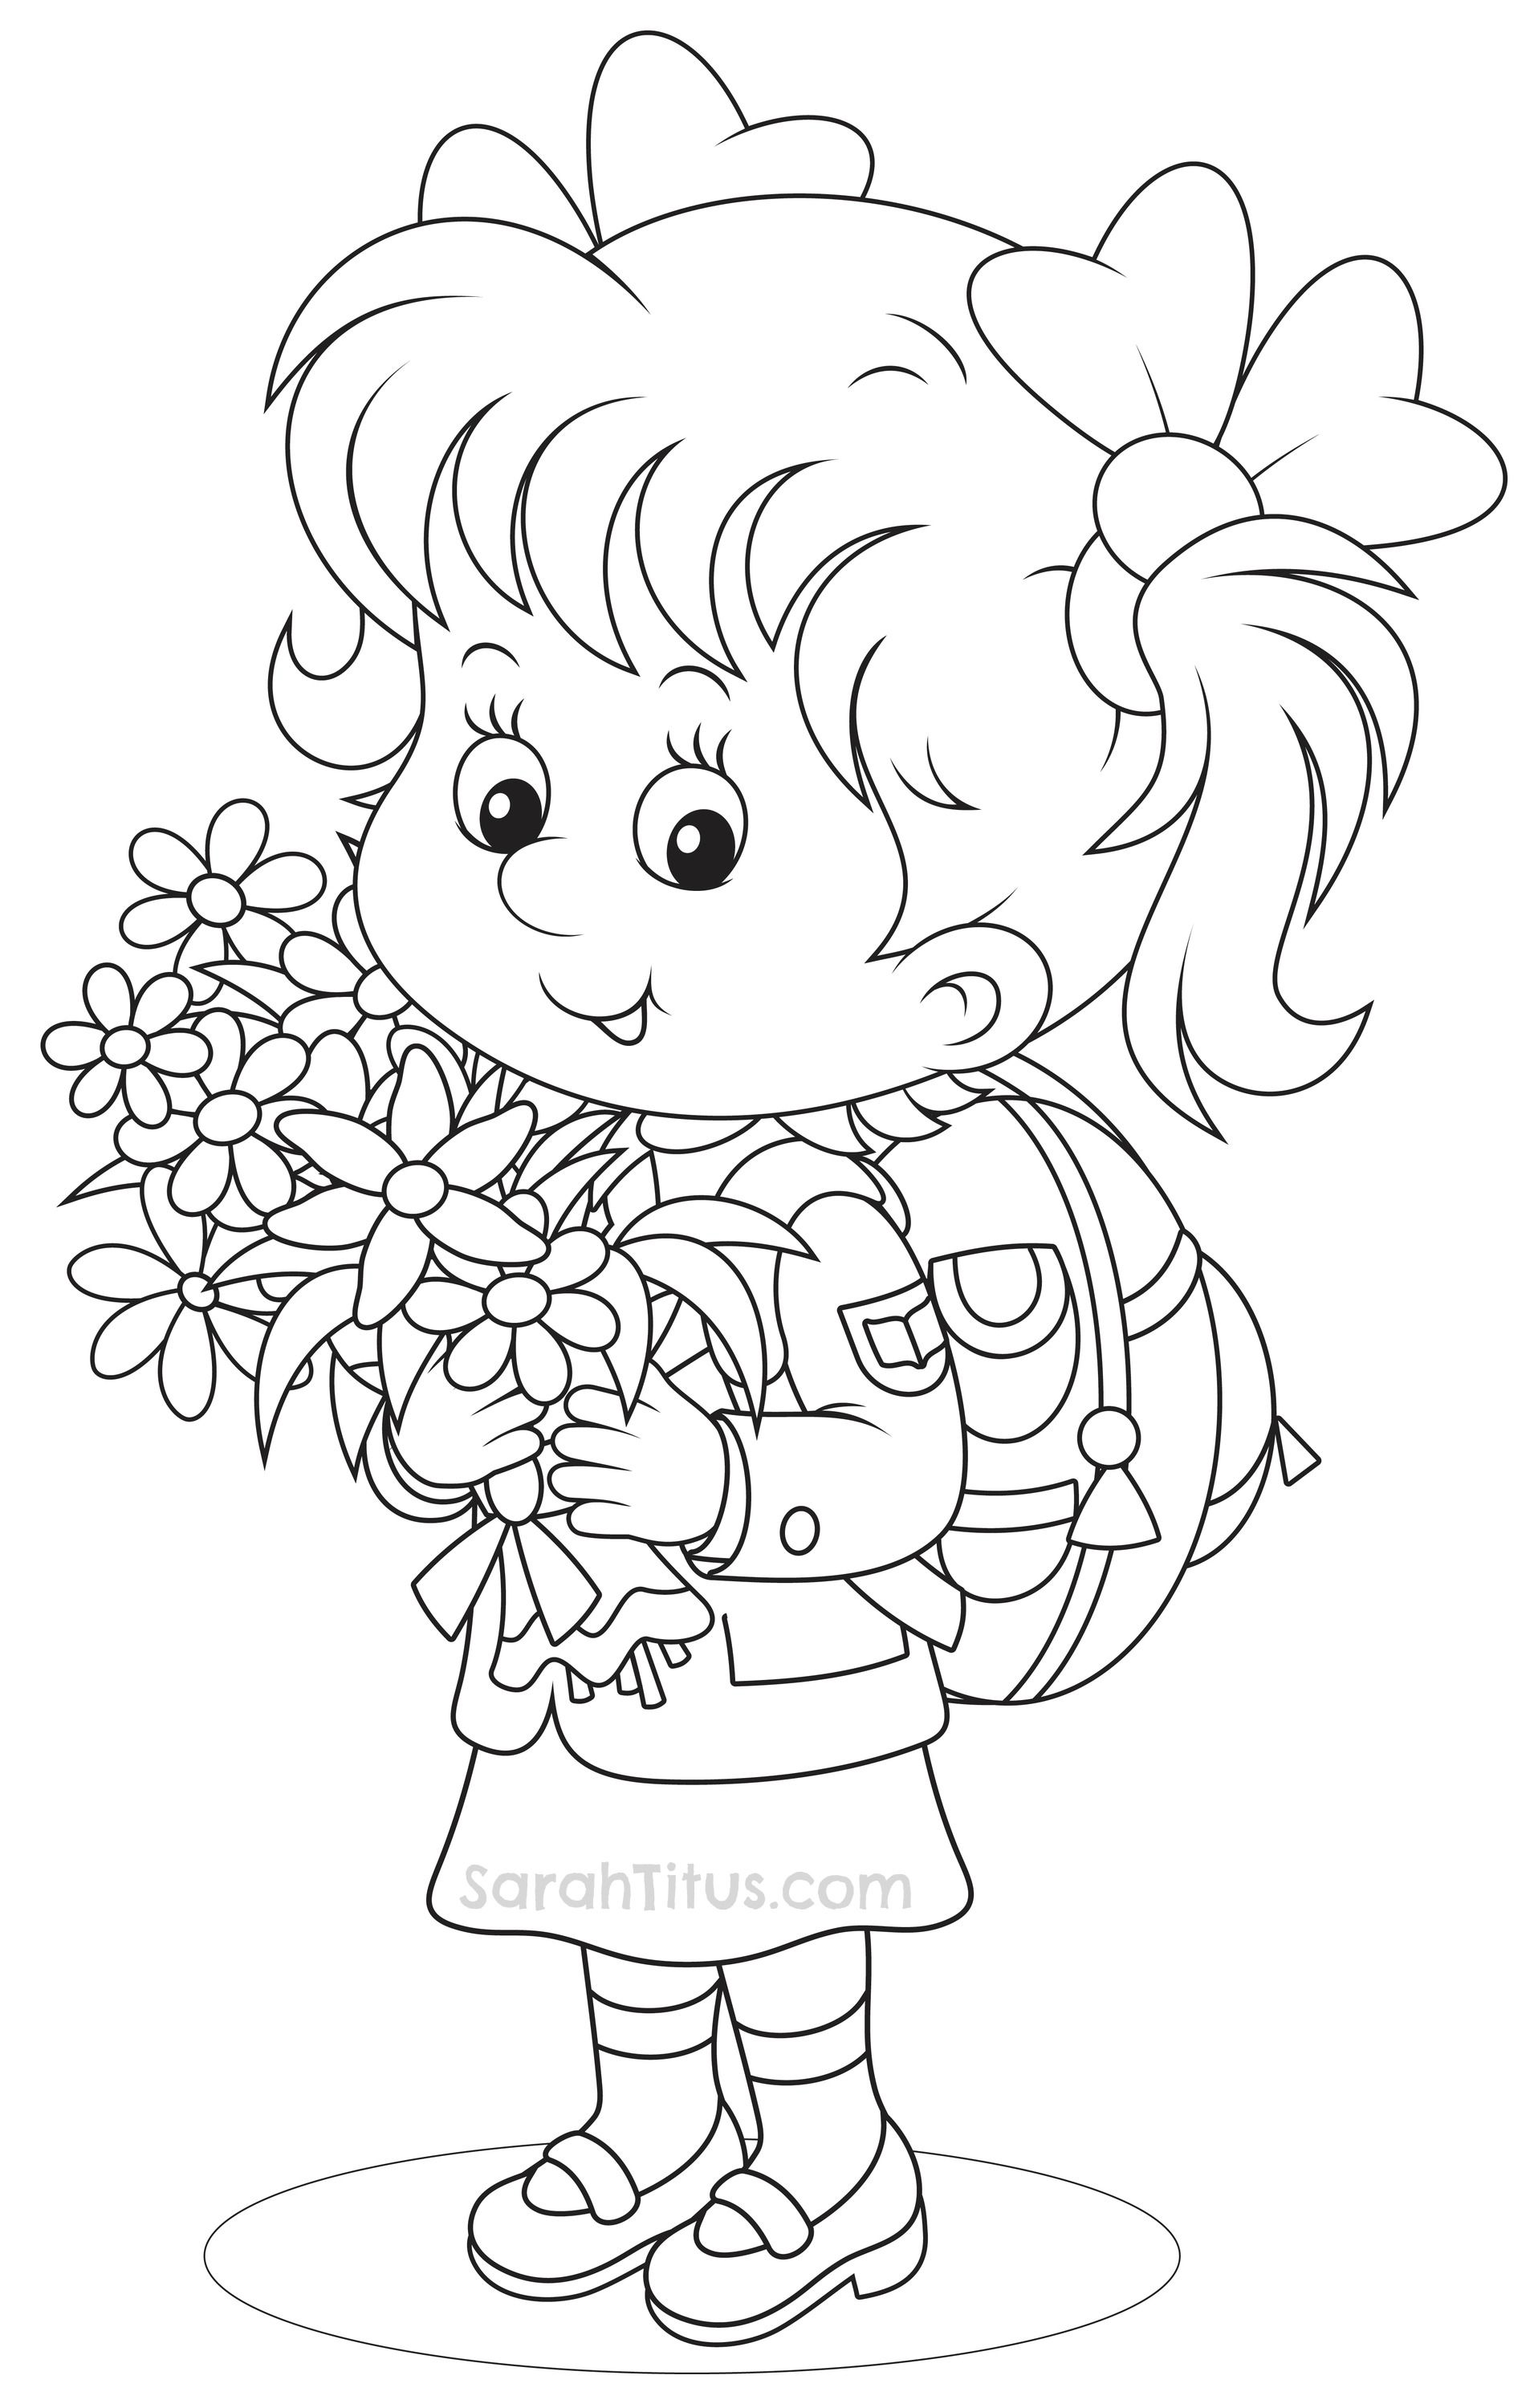 Back to School Coloring Pages | Colorear, Escuela y Dibujo